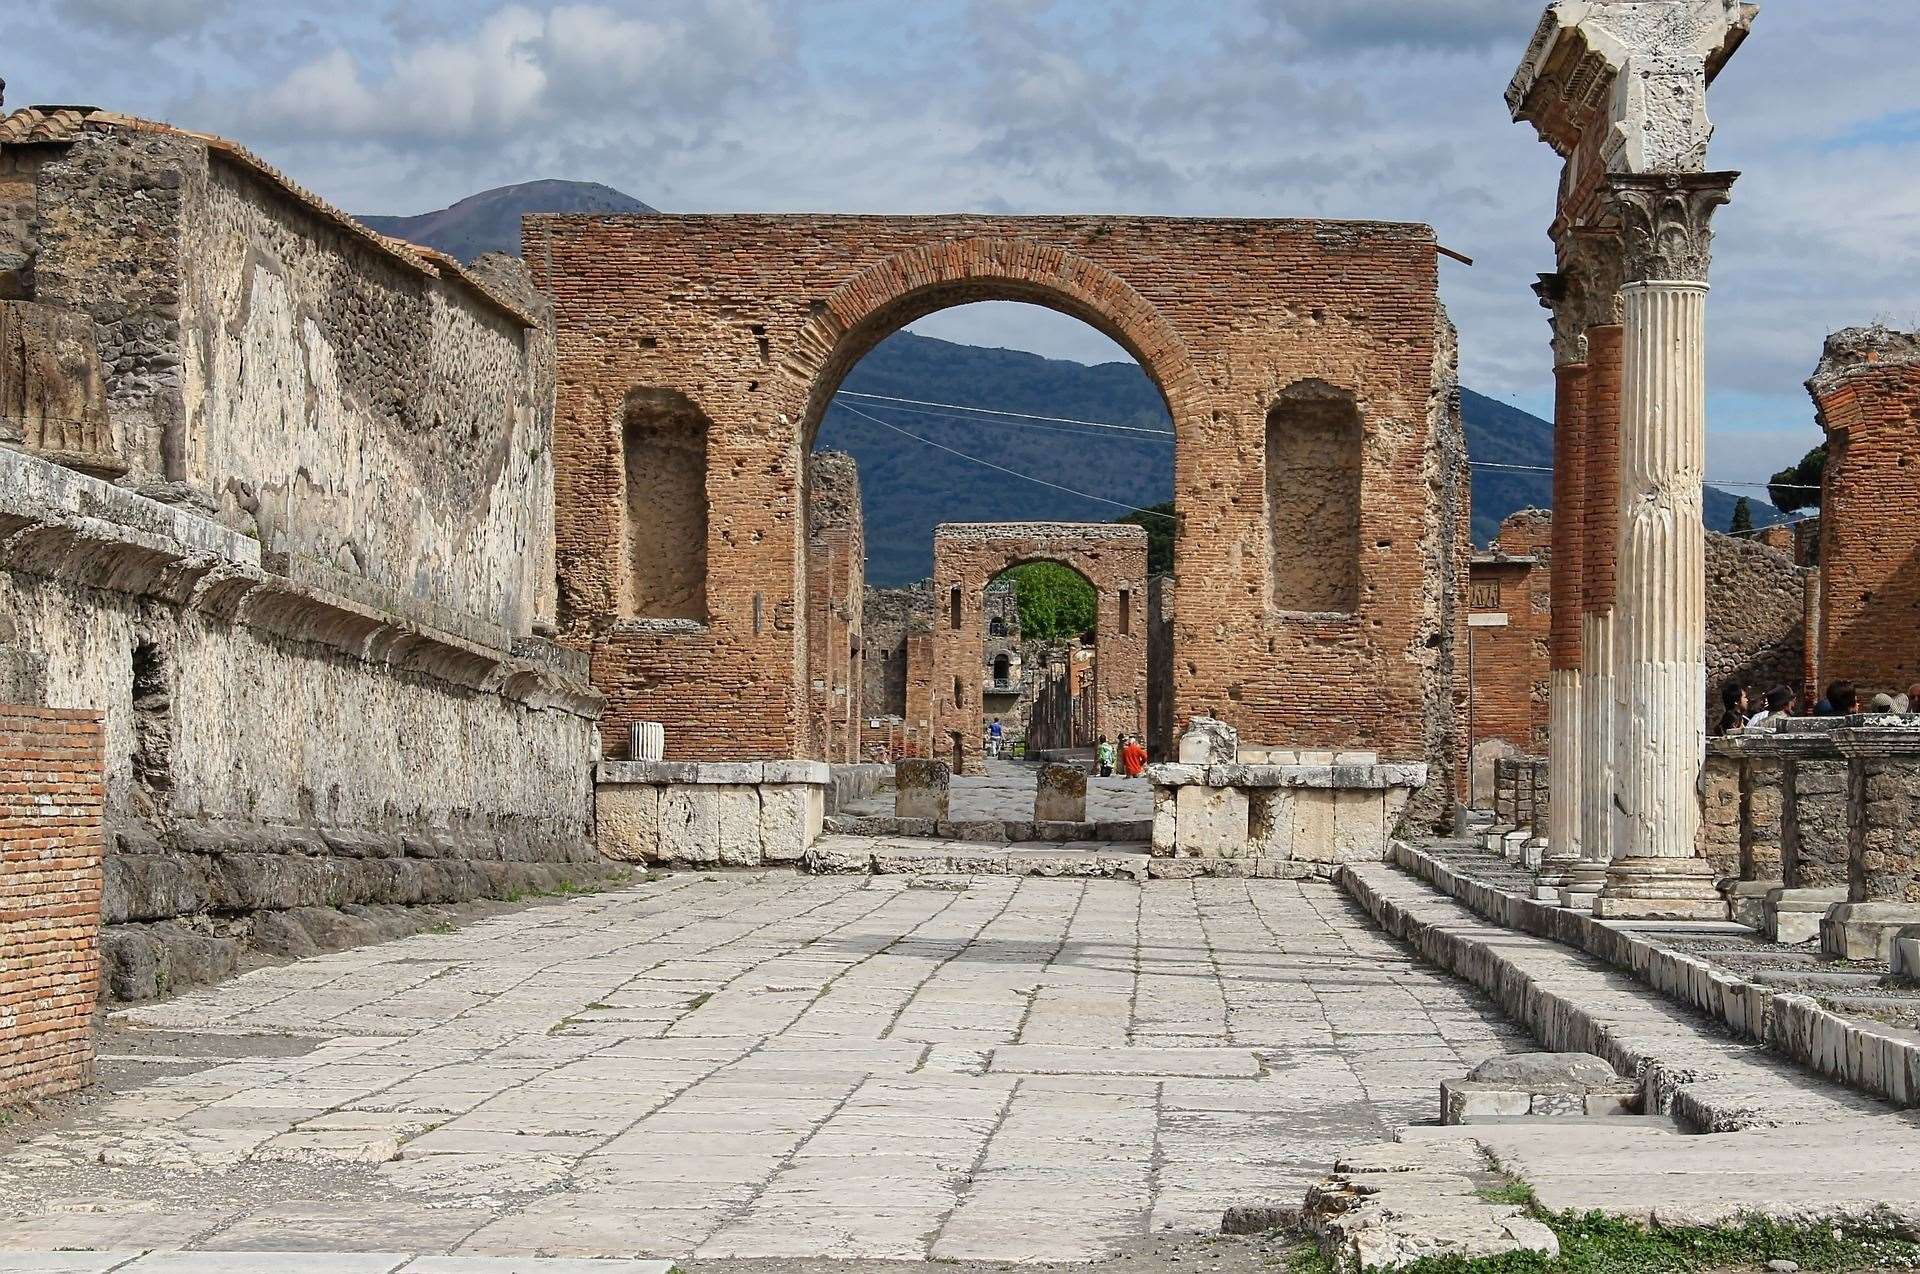 Pompeii, where a British tourist is alleged to have tried to steal tiles from a mosaic (8379902)